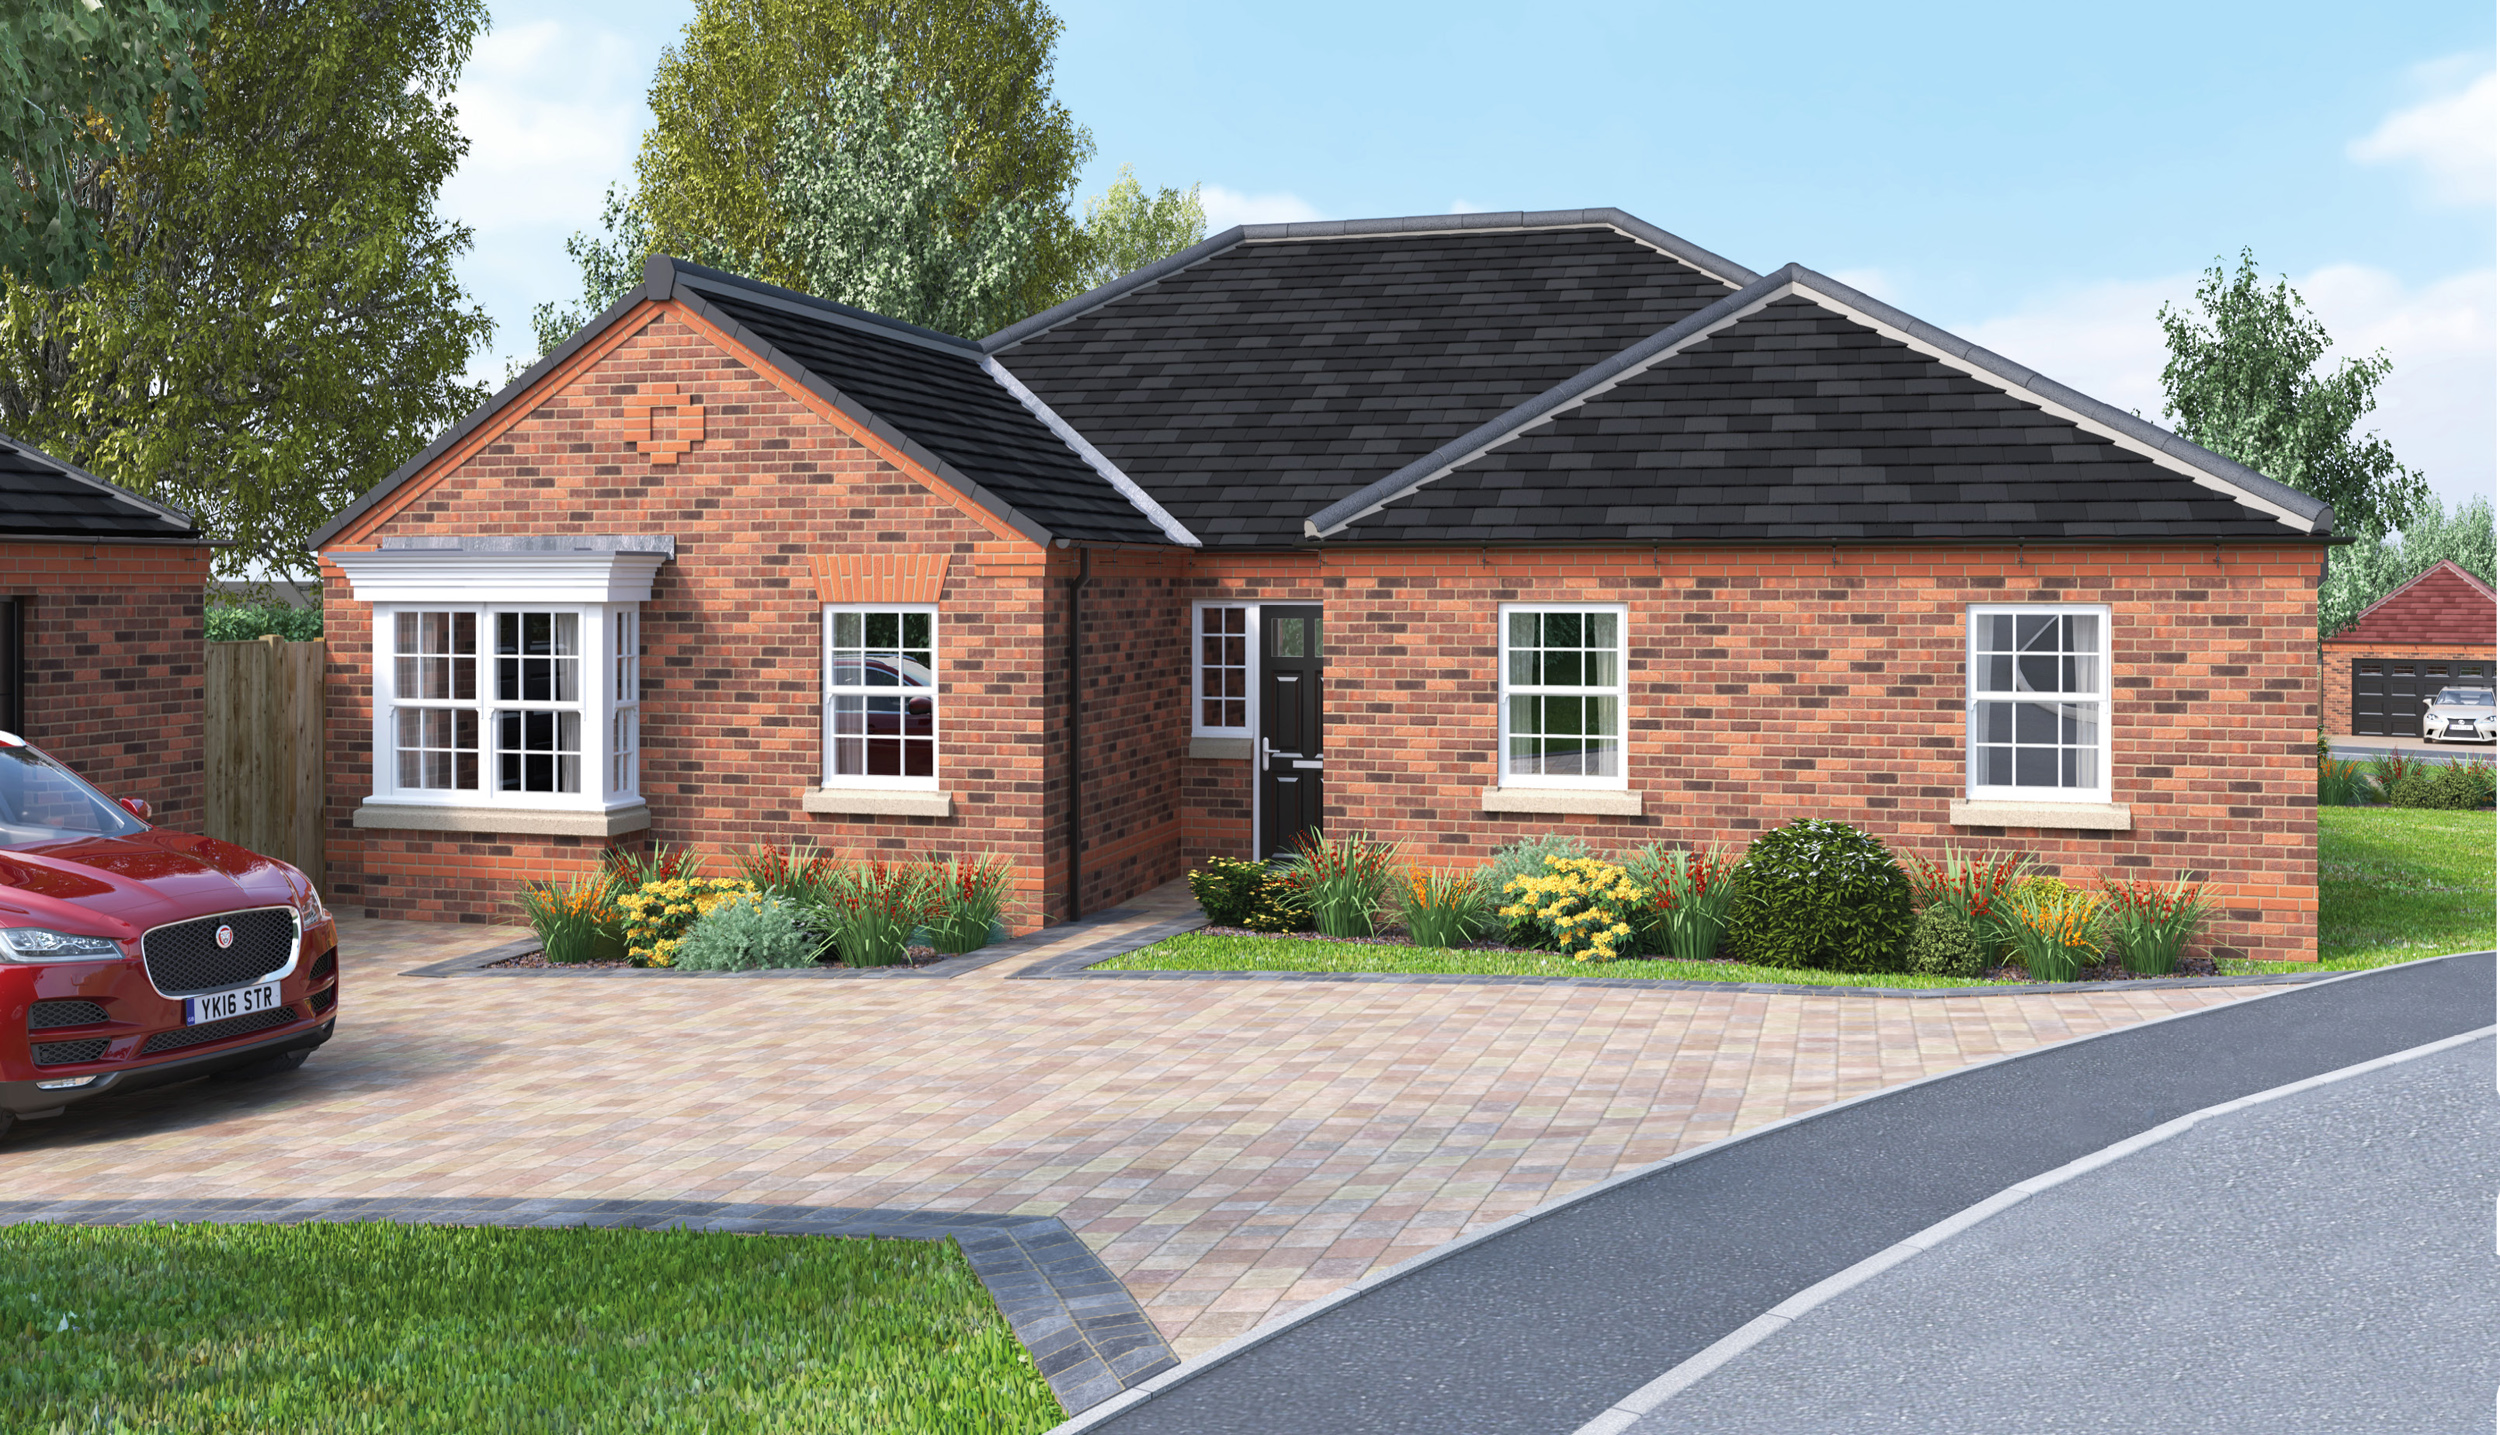 Luxury bungalow show home set to open soon at Ranskill